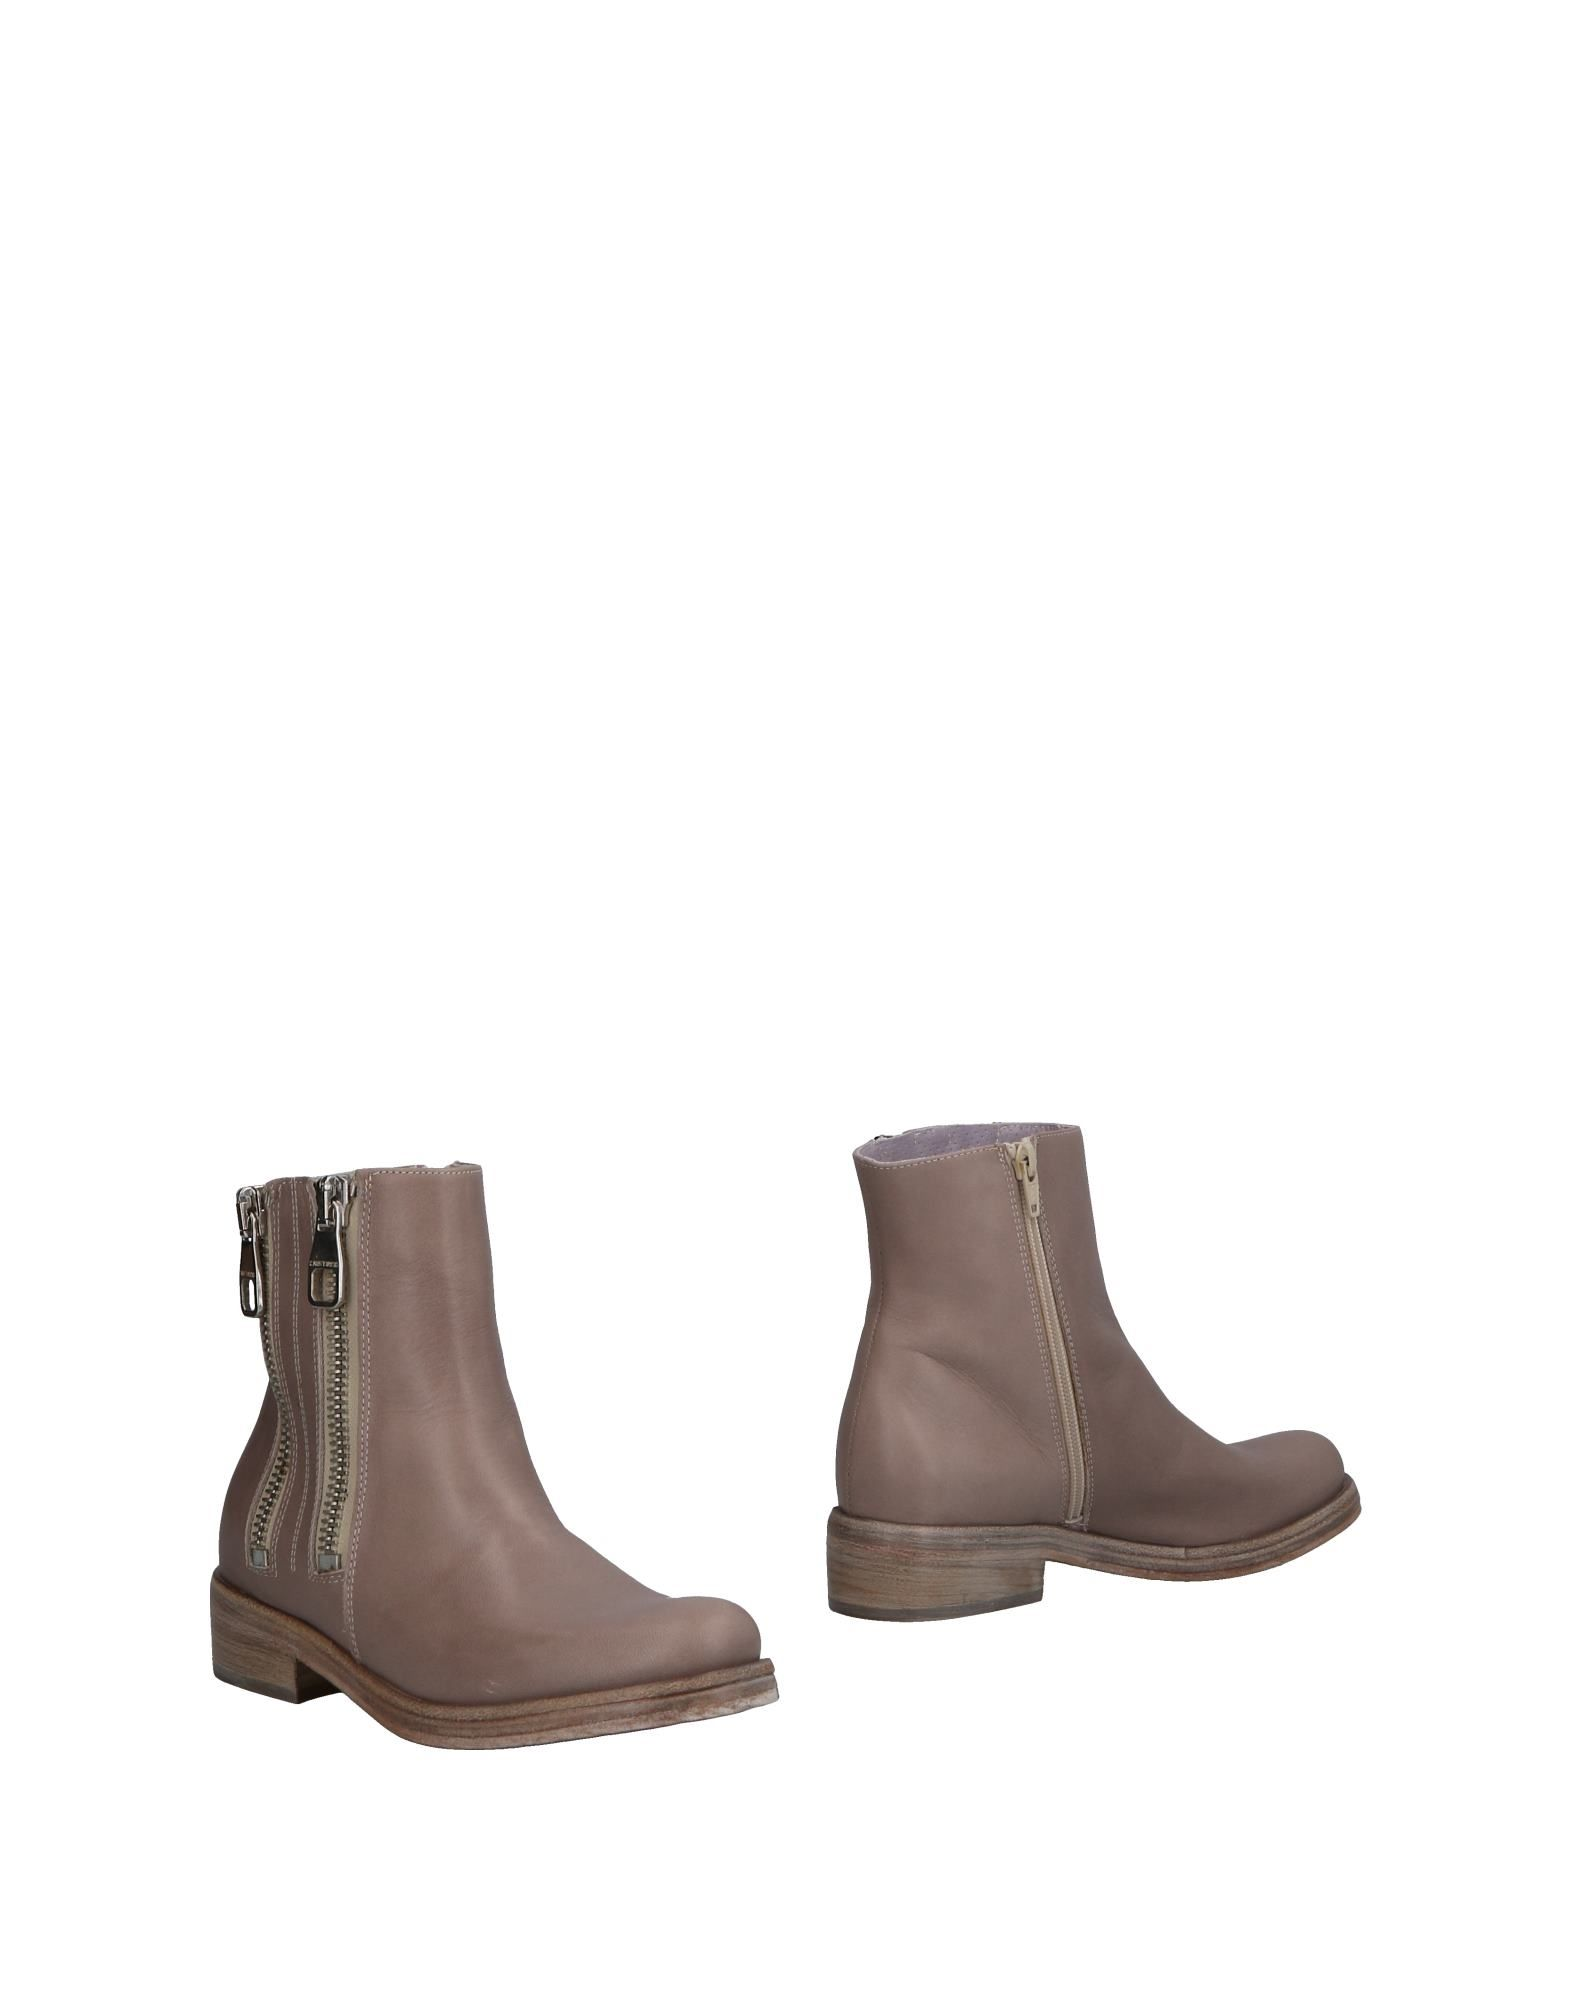 Cristian G Ankle Boot - Women Cristian G Ankle Boots - online on  Australia - Boots 11504066CW dc2760